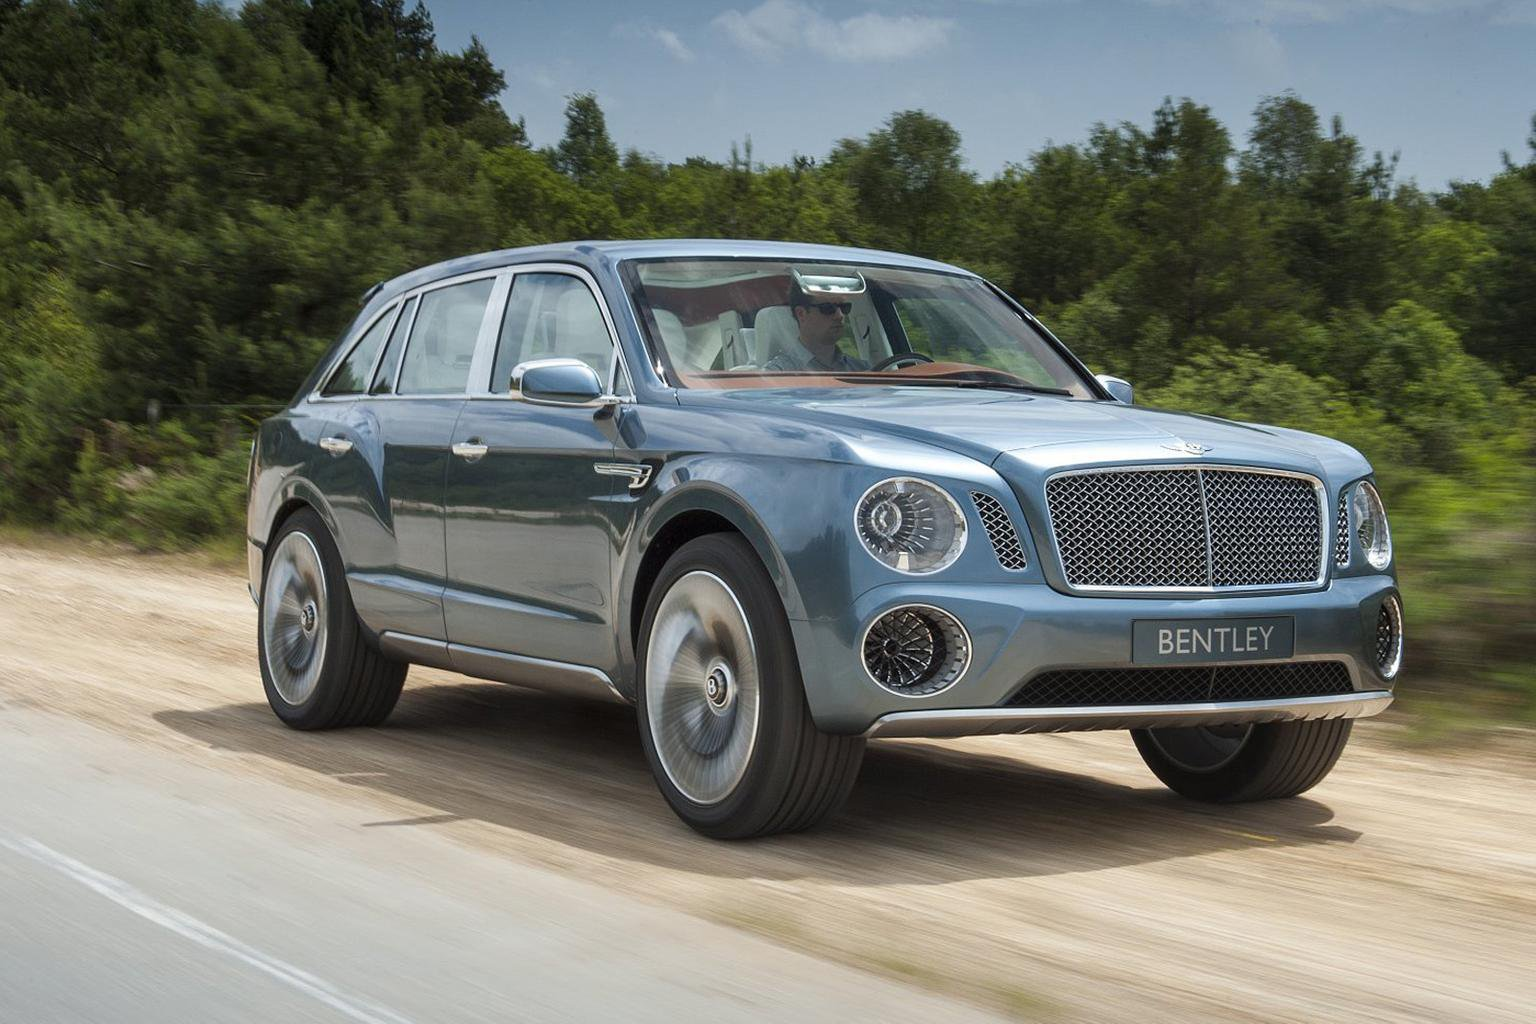 V8 diesel mooted for Bentley SUV